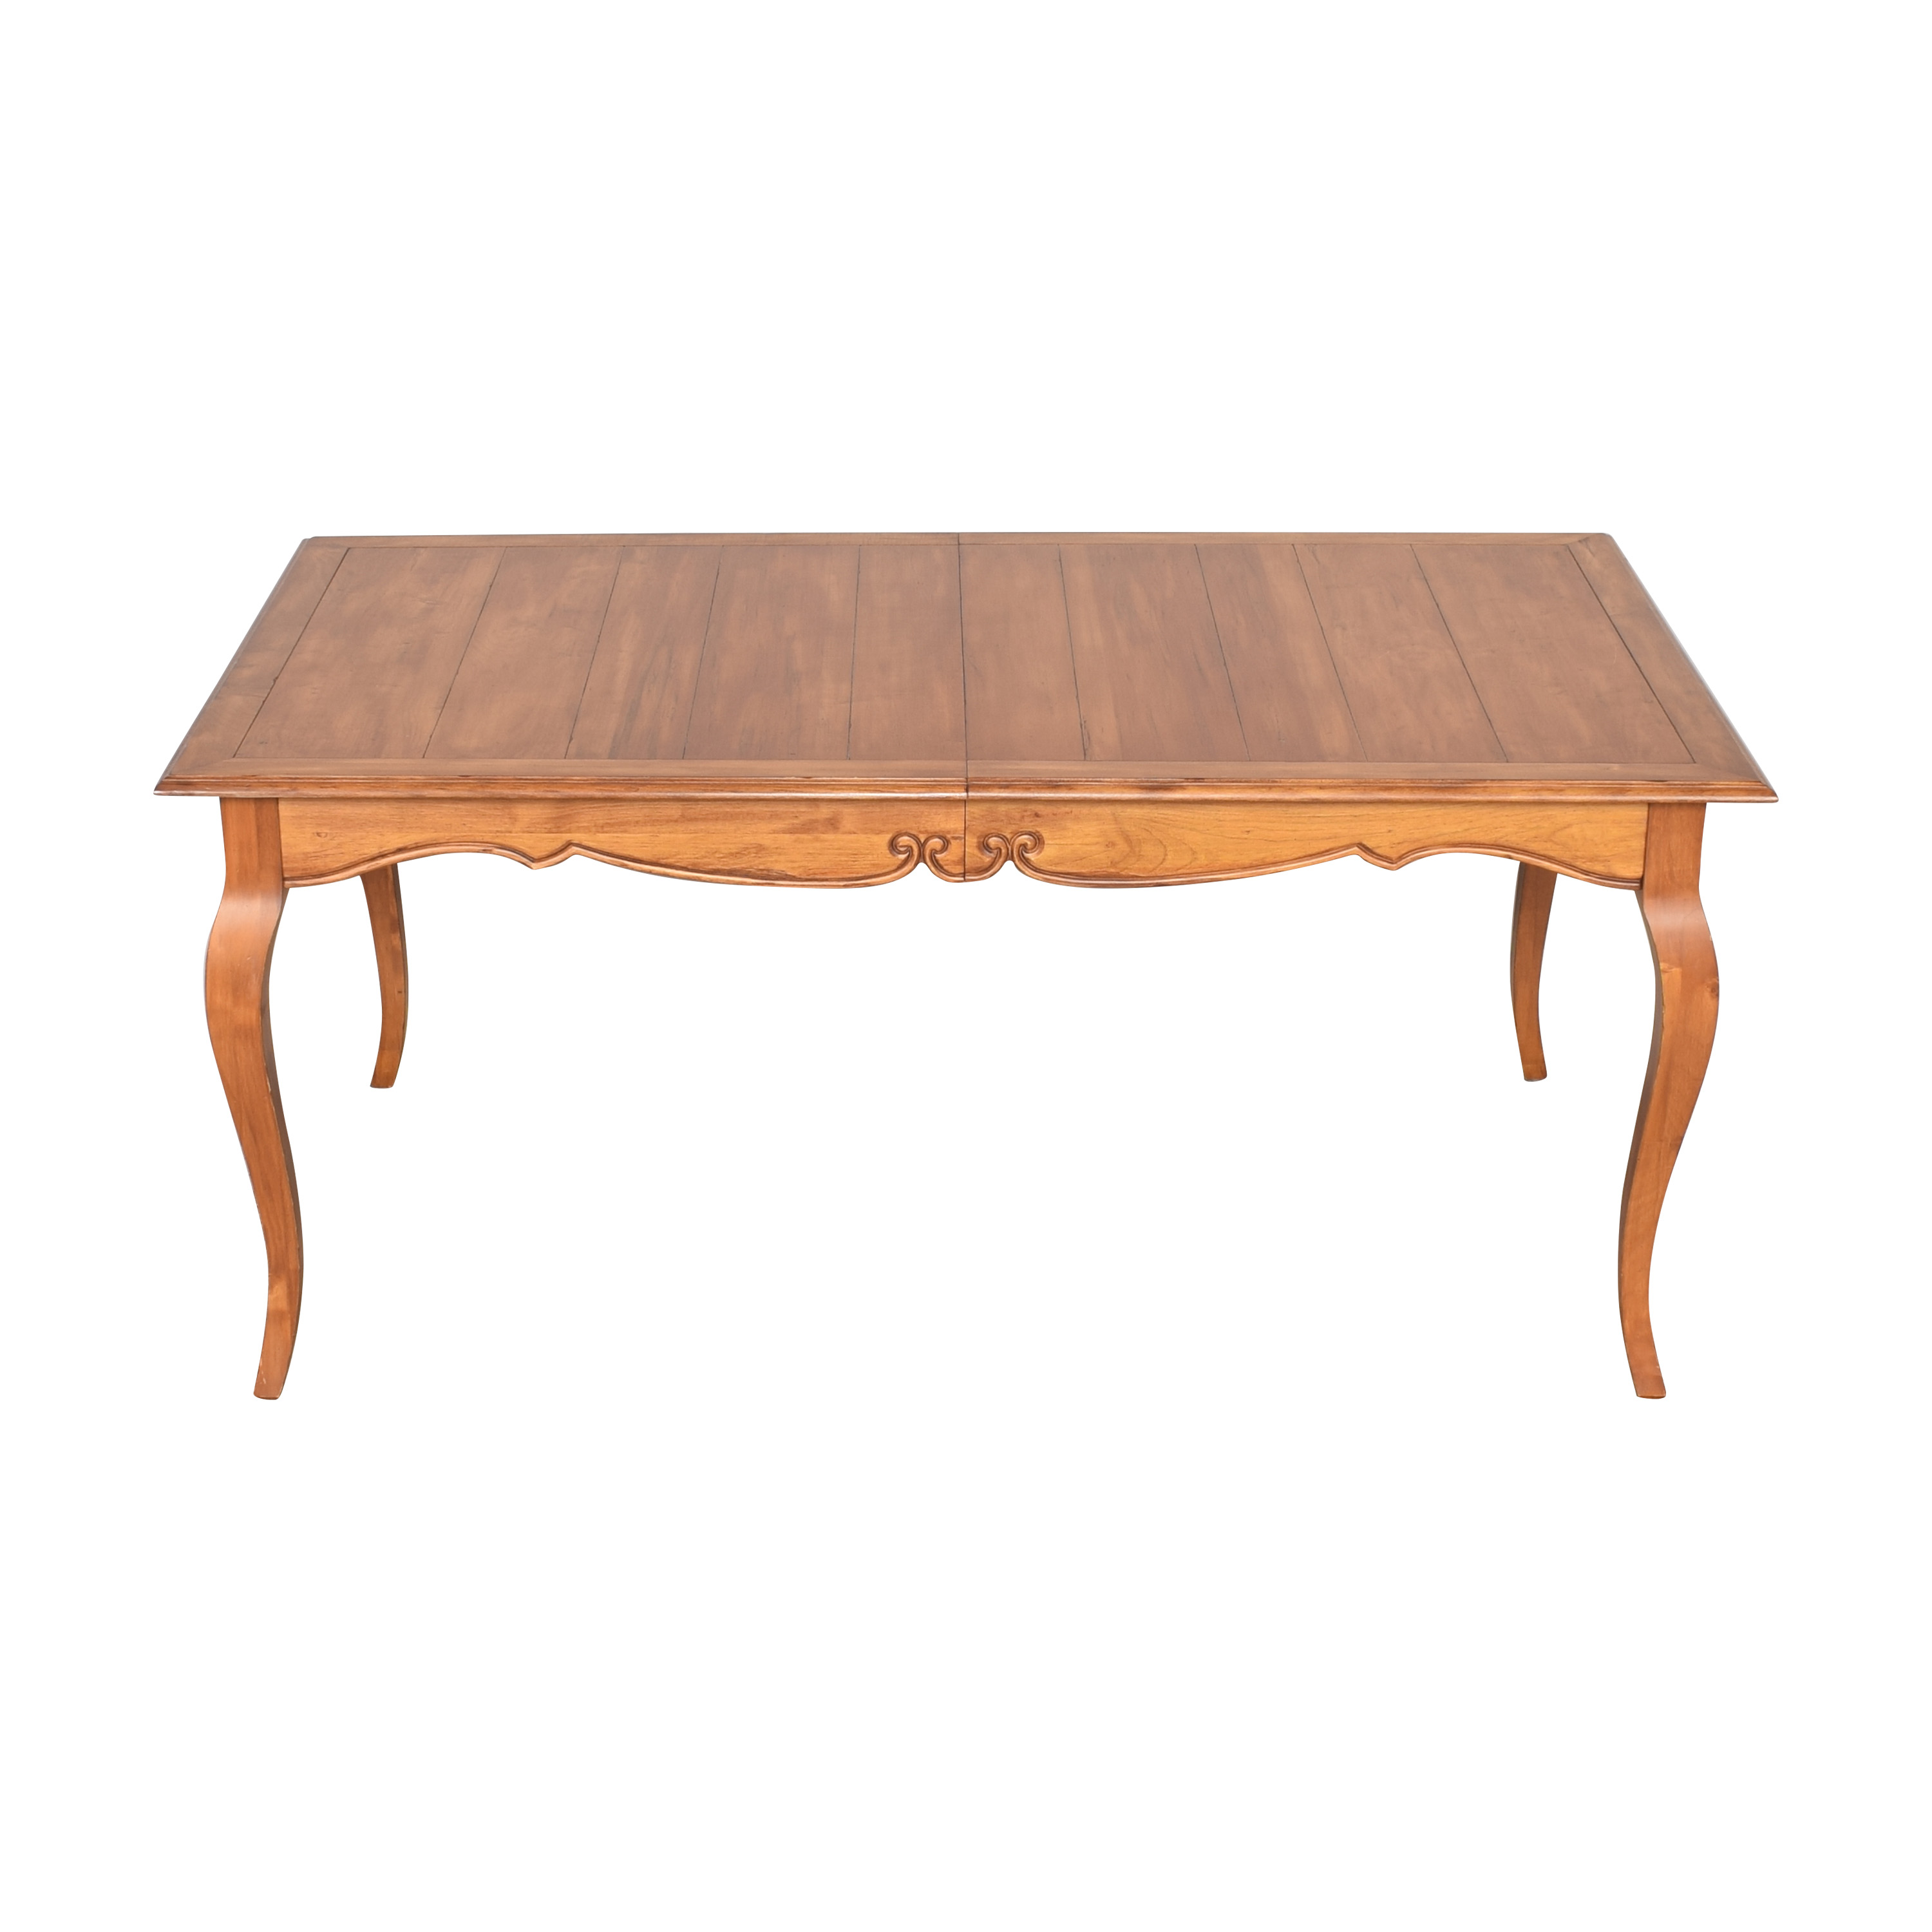 Ethan Allen Legacy Collection Extendable Dining Table Ethan Allen